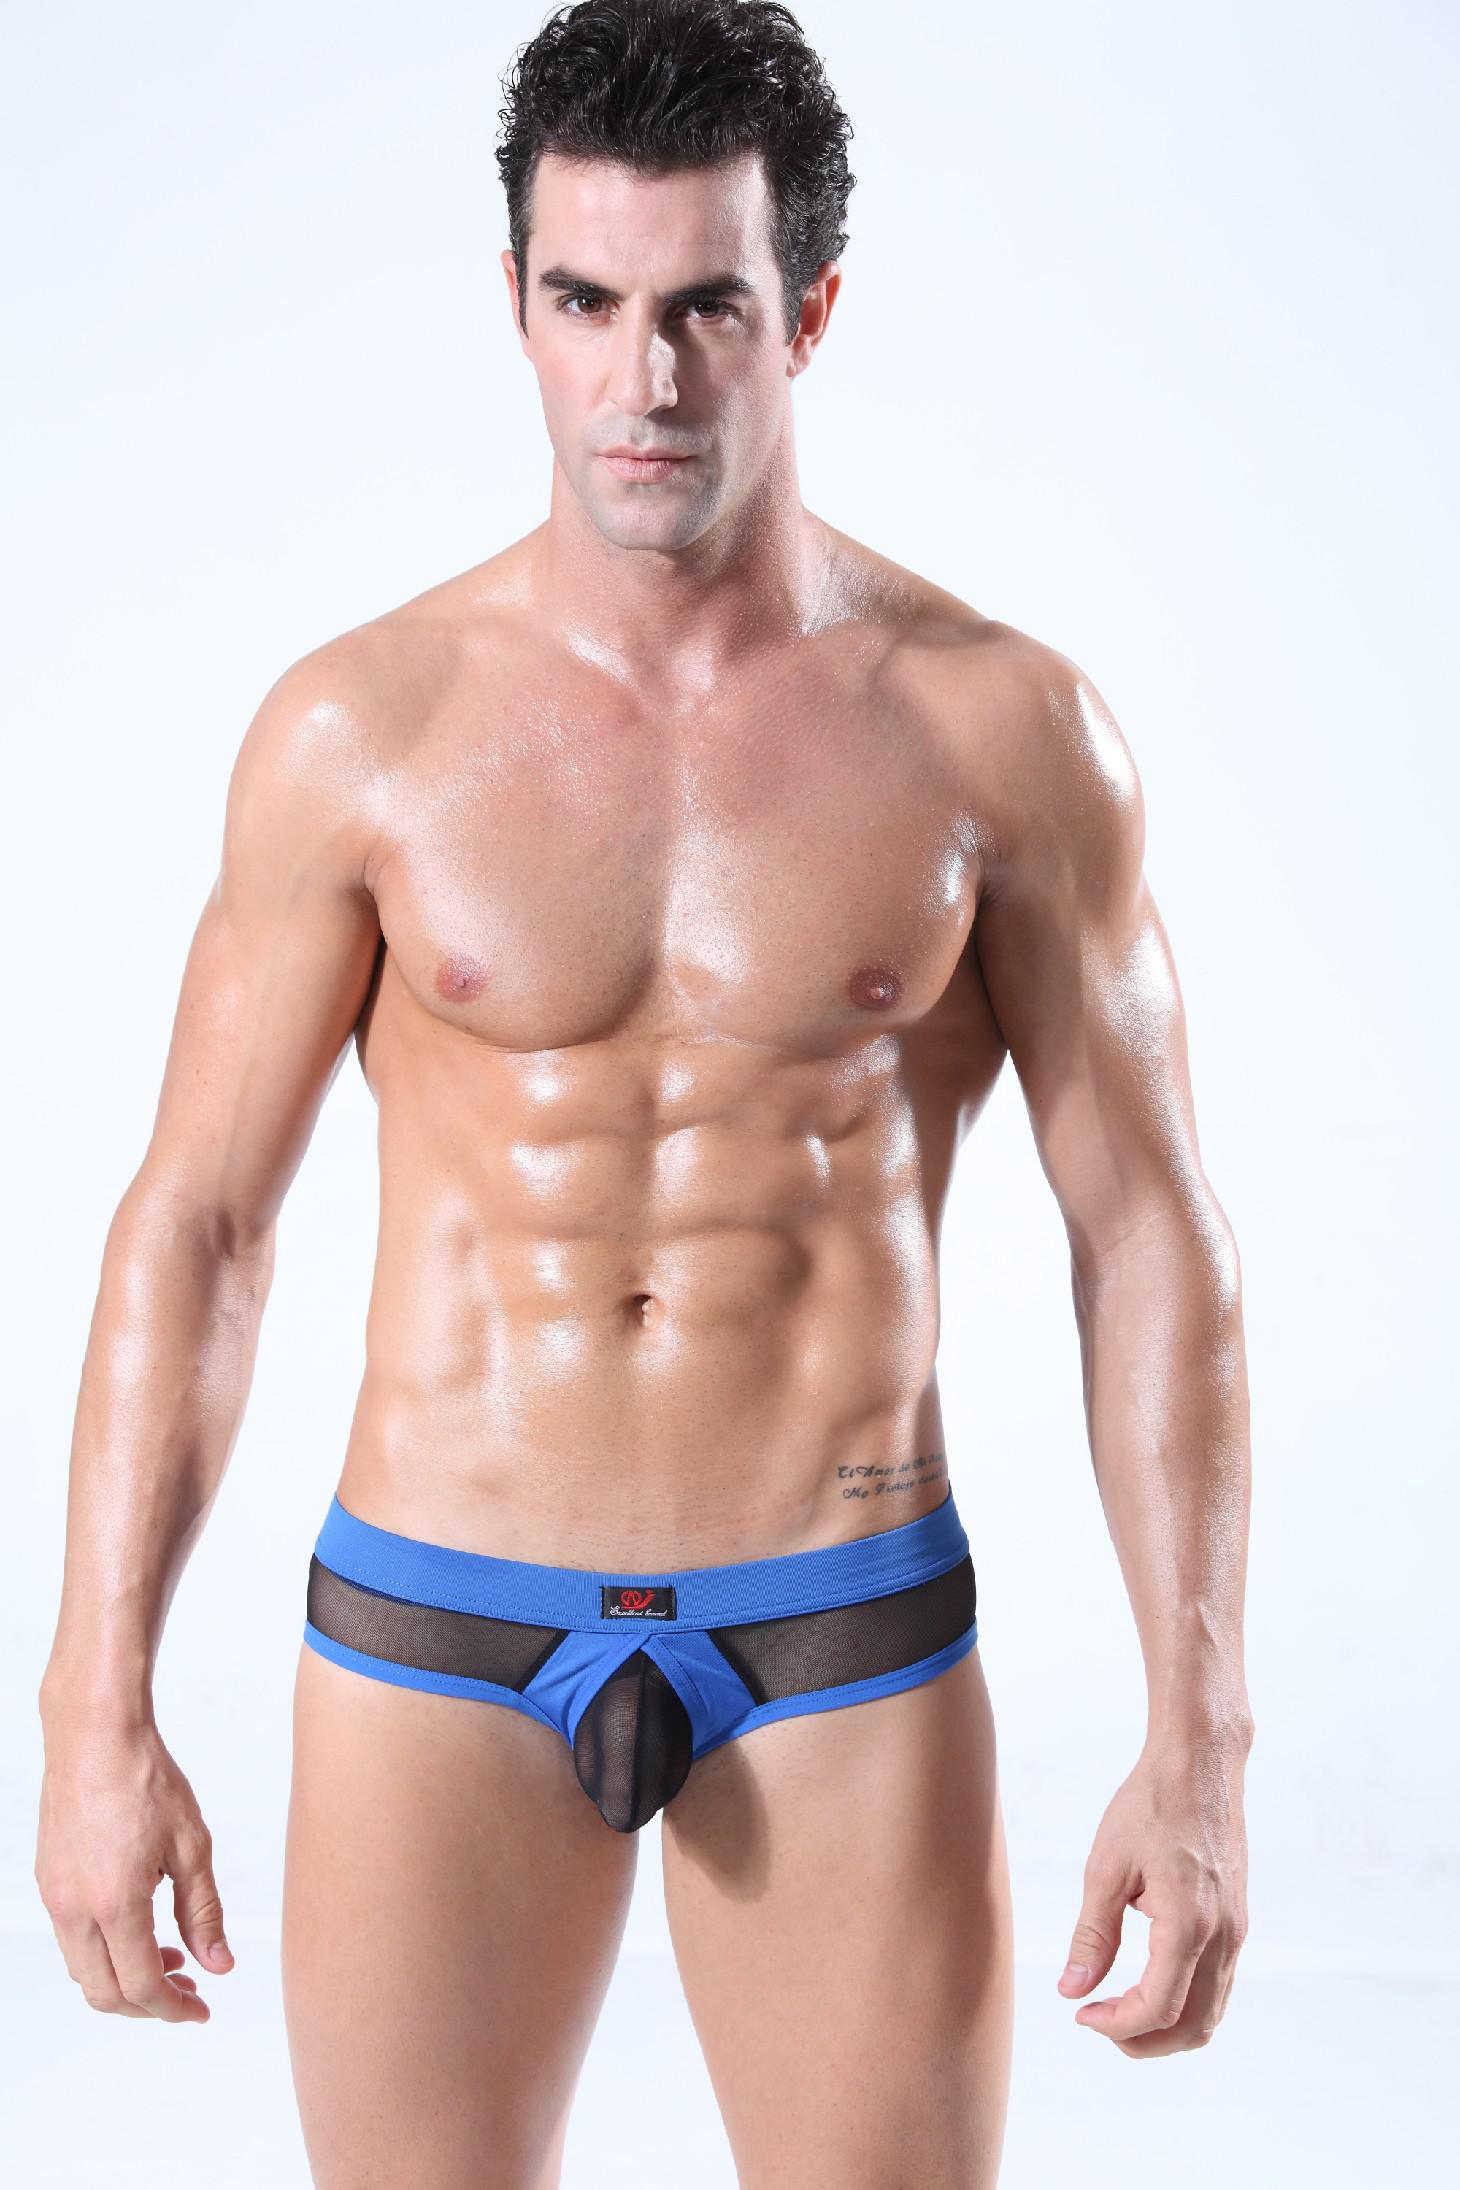 Men's Underwear from eternal-sv.tk Whether you're searching for a pack of classic briefs or a specific color or fit of boxers, eternal-sv.tk offers a wide range of comfortable, classic, and can't-go-wrong underwear for men.